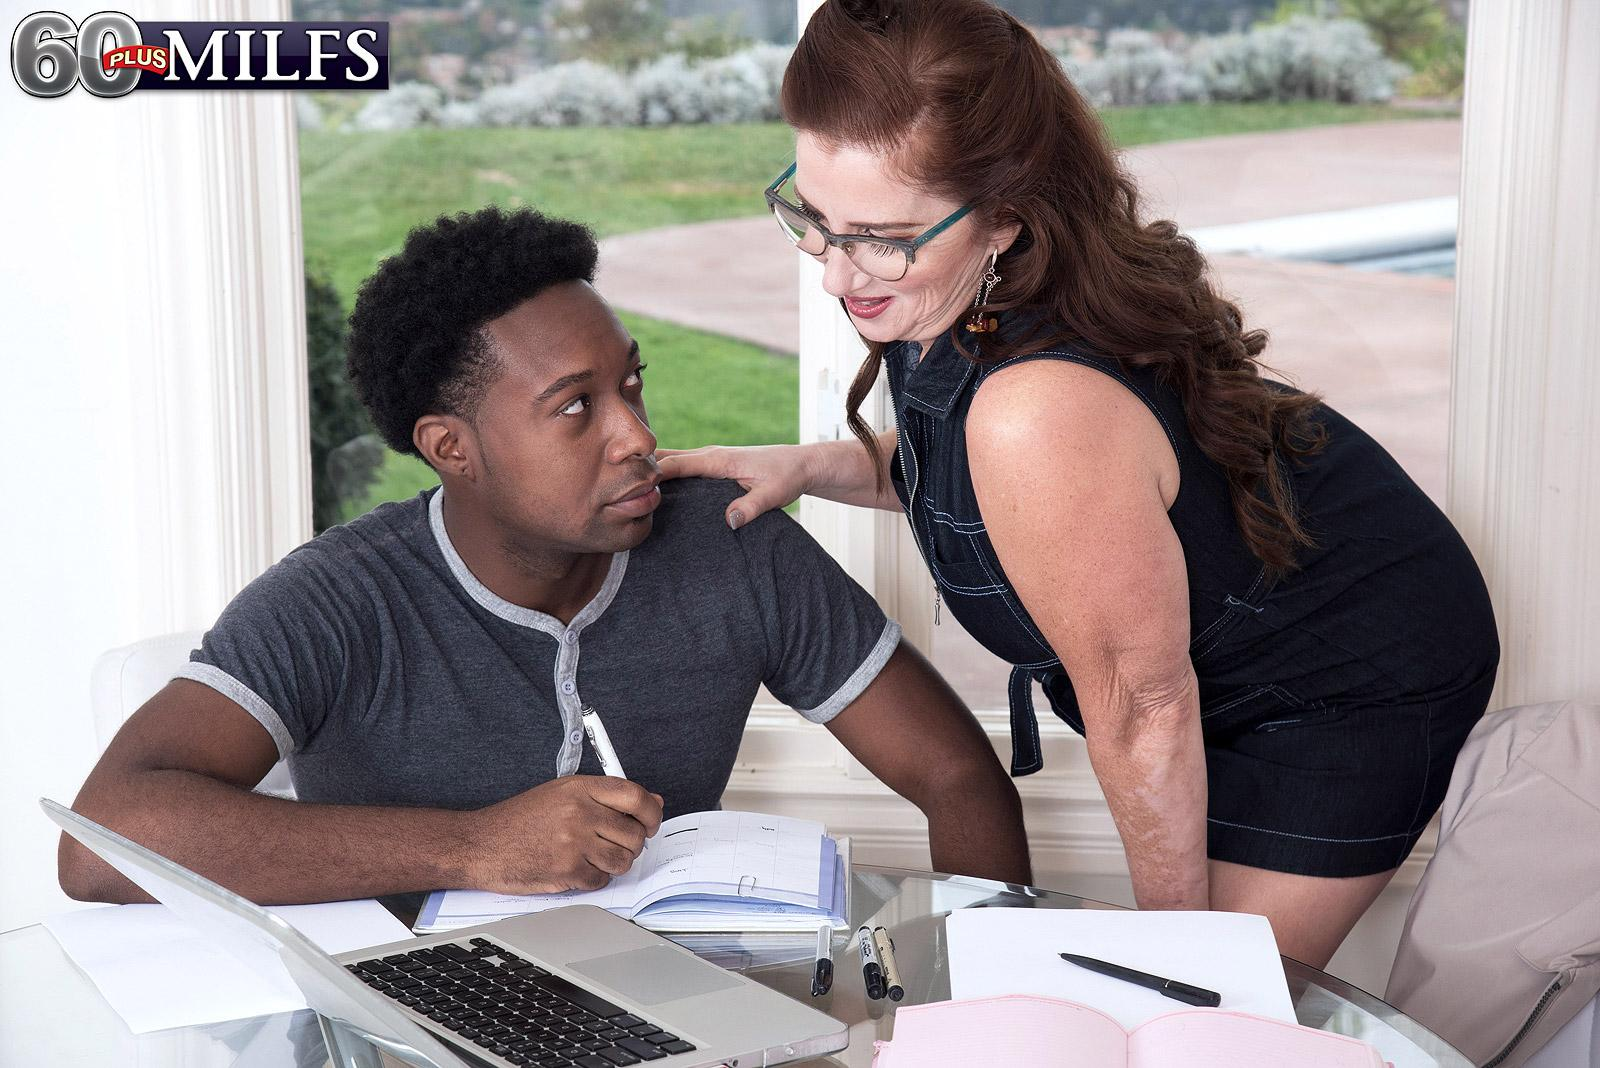 Over sixty woman Maria Fawndeli seduces a younger black dude while tutoring him